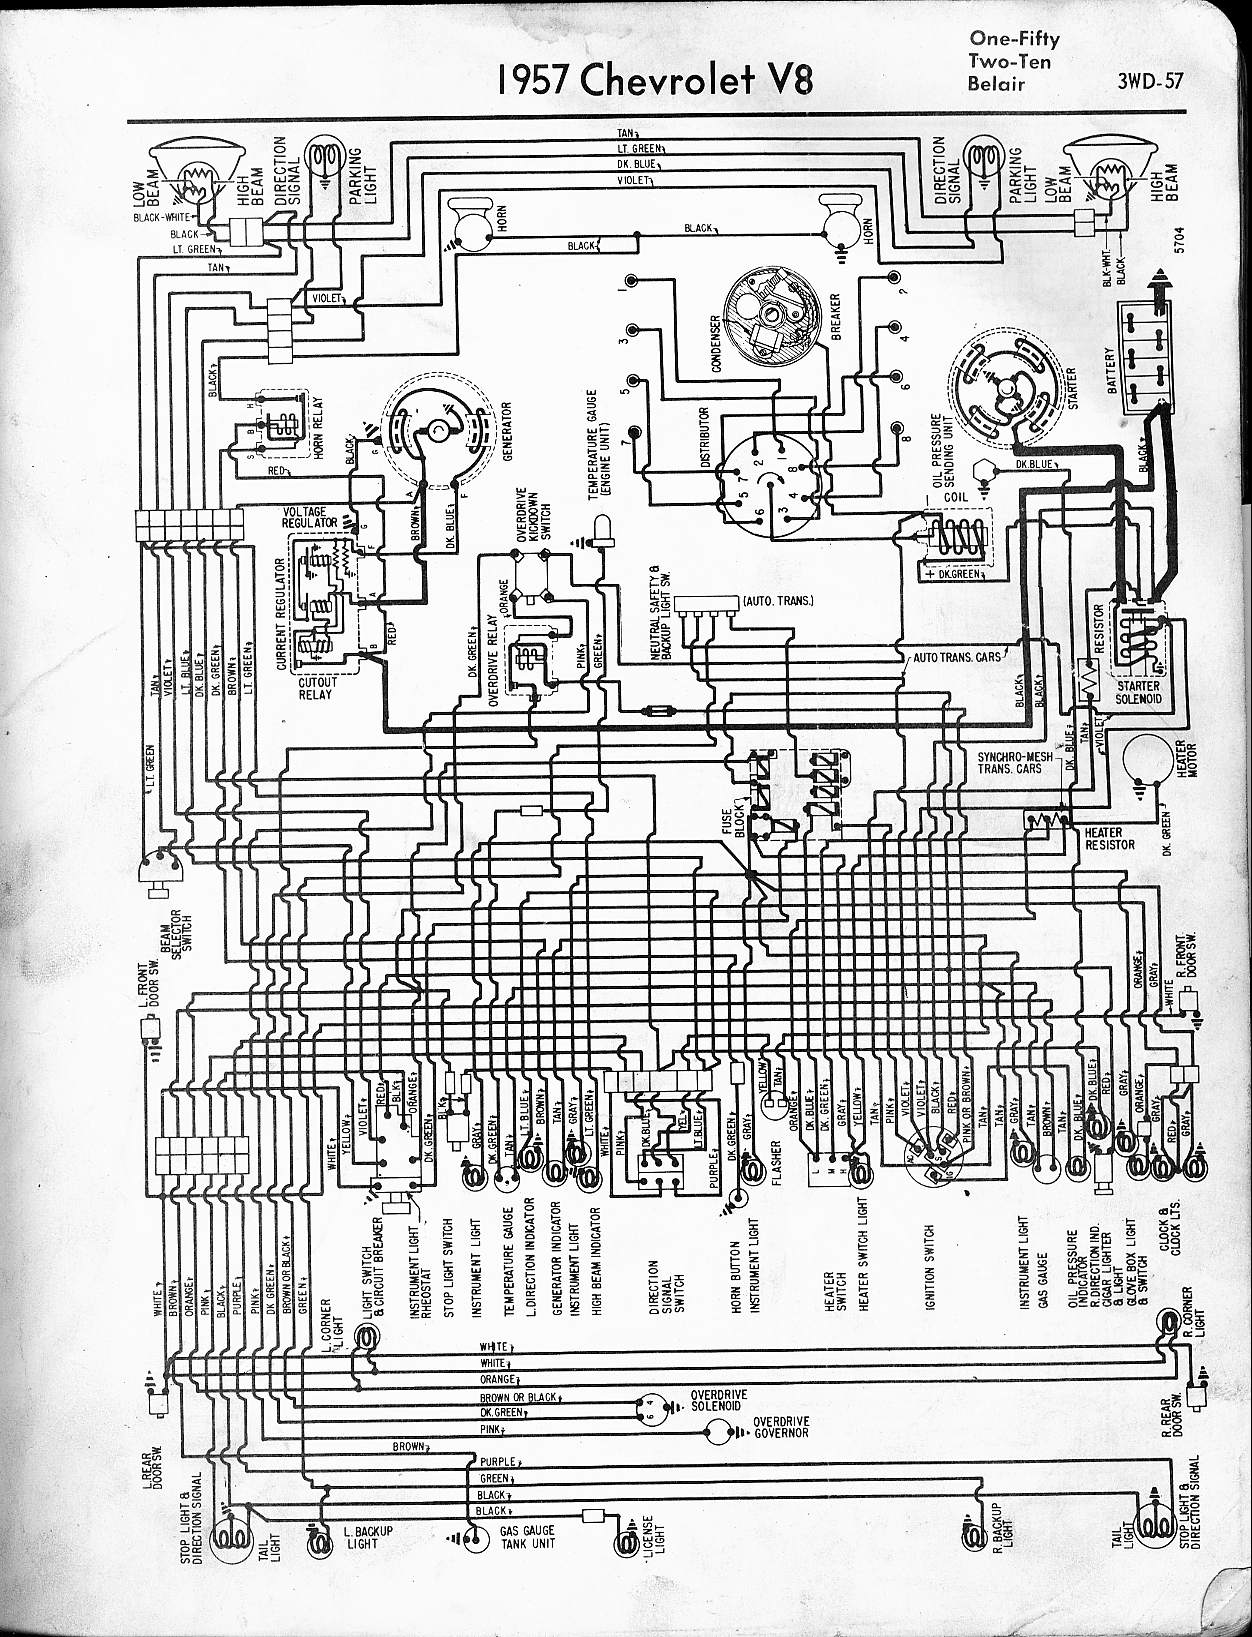 MWireChev57_3WD 057 57 65 chevy wiring diagrams 1957 chevy wiring harness at bayanpartner.co